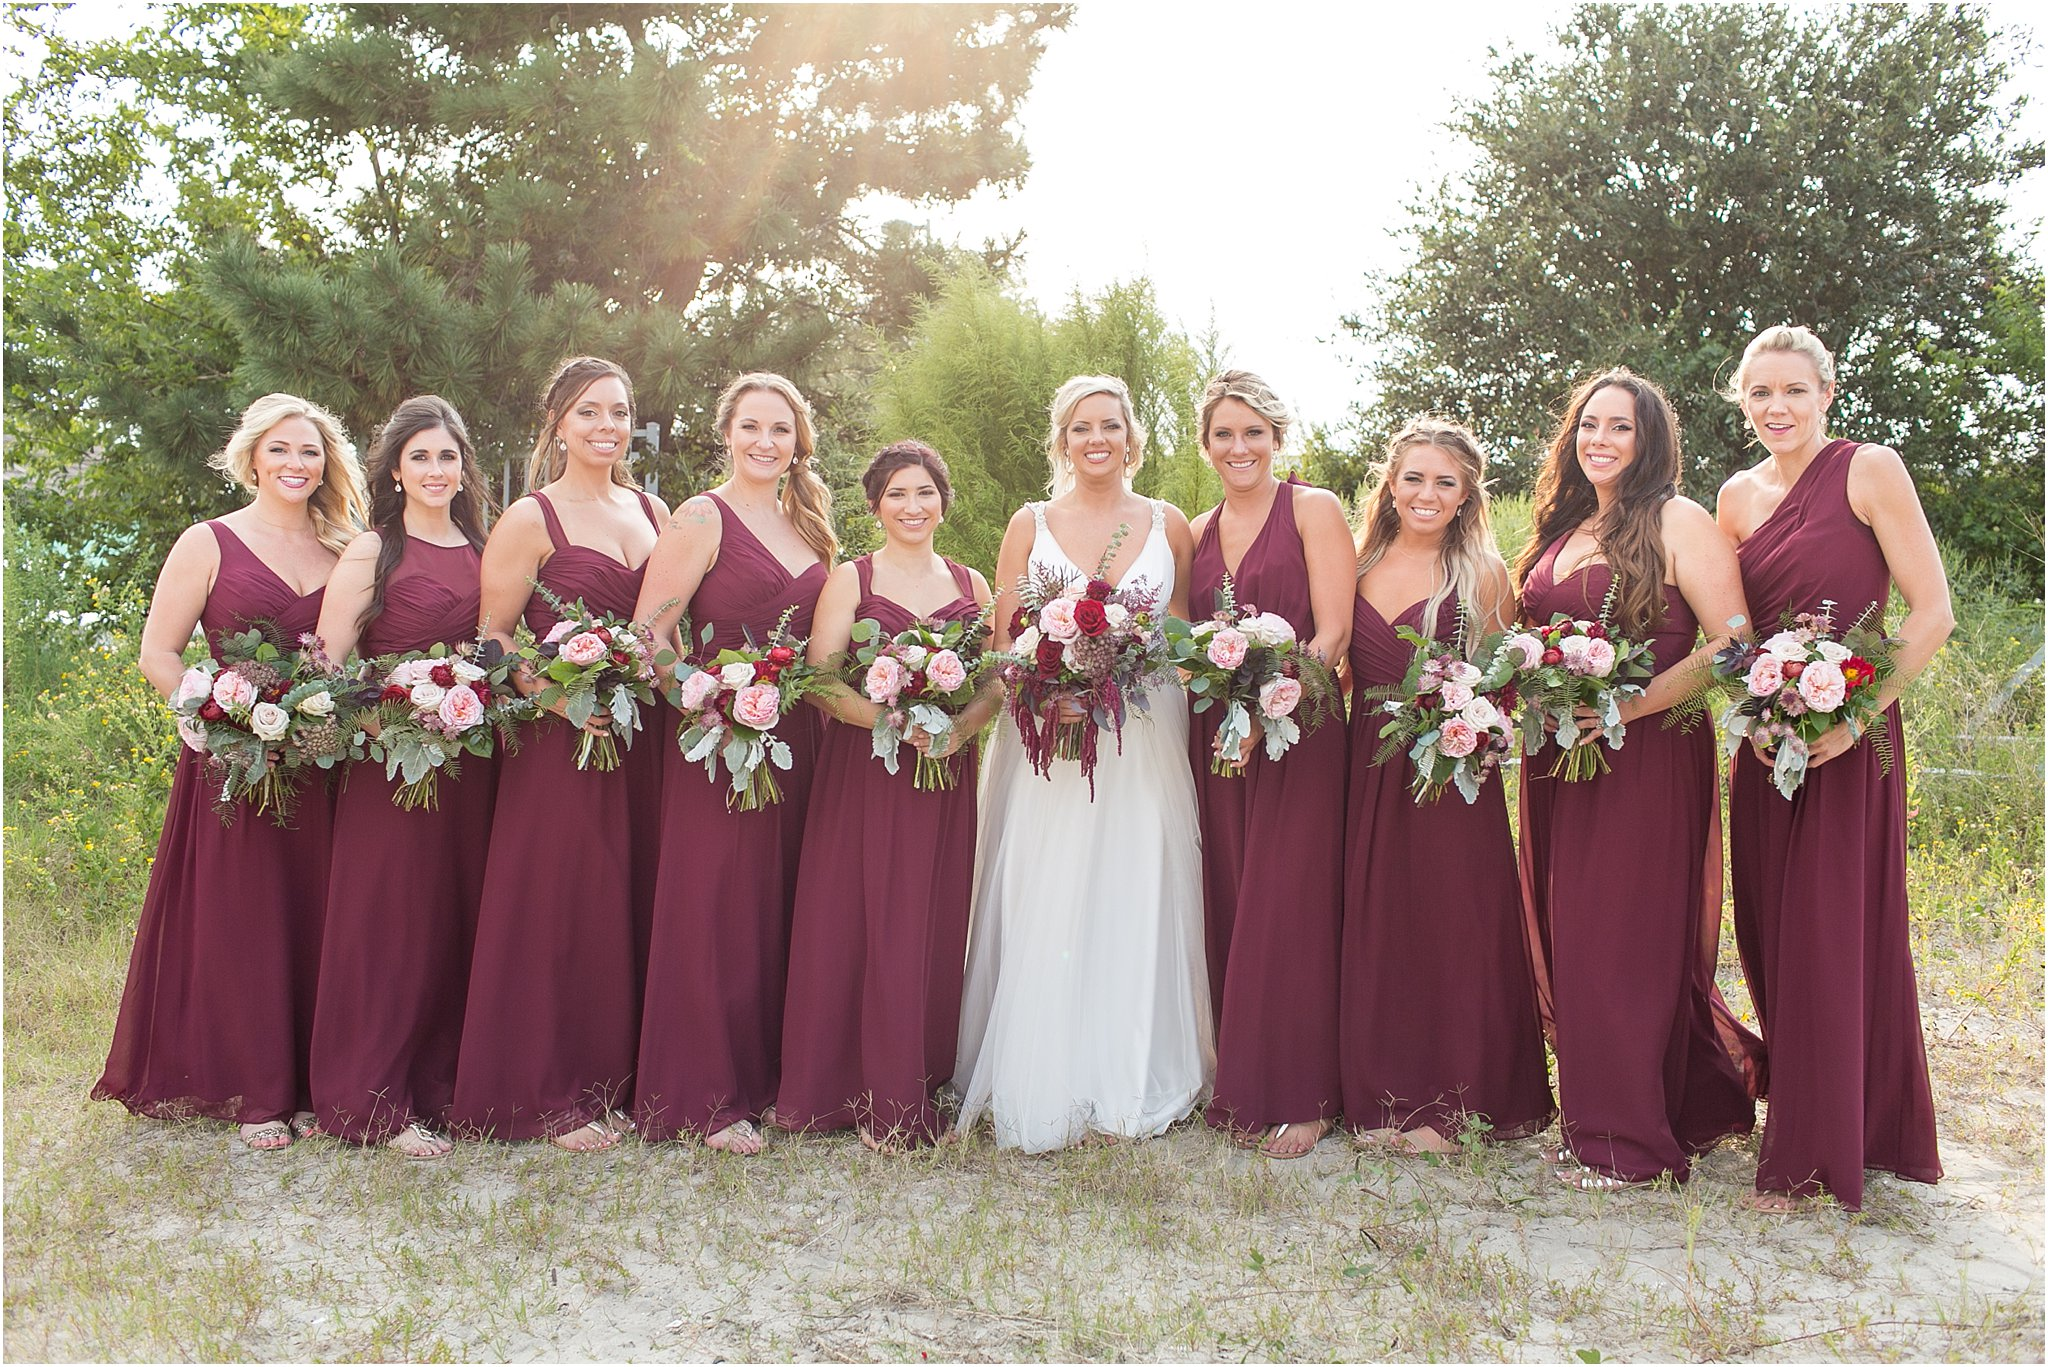 jessica_ryan_photography_virginia_wedding_photographer_candid_authentic_hampton_roads_wedding_photography_marina_shores_yacht_club_first_landing_state_park_woodland_theme_garden_3335